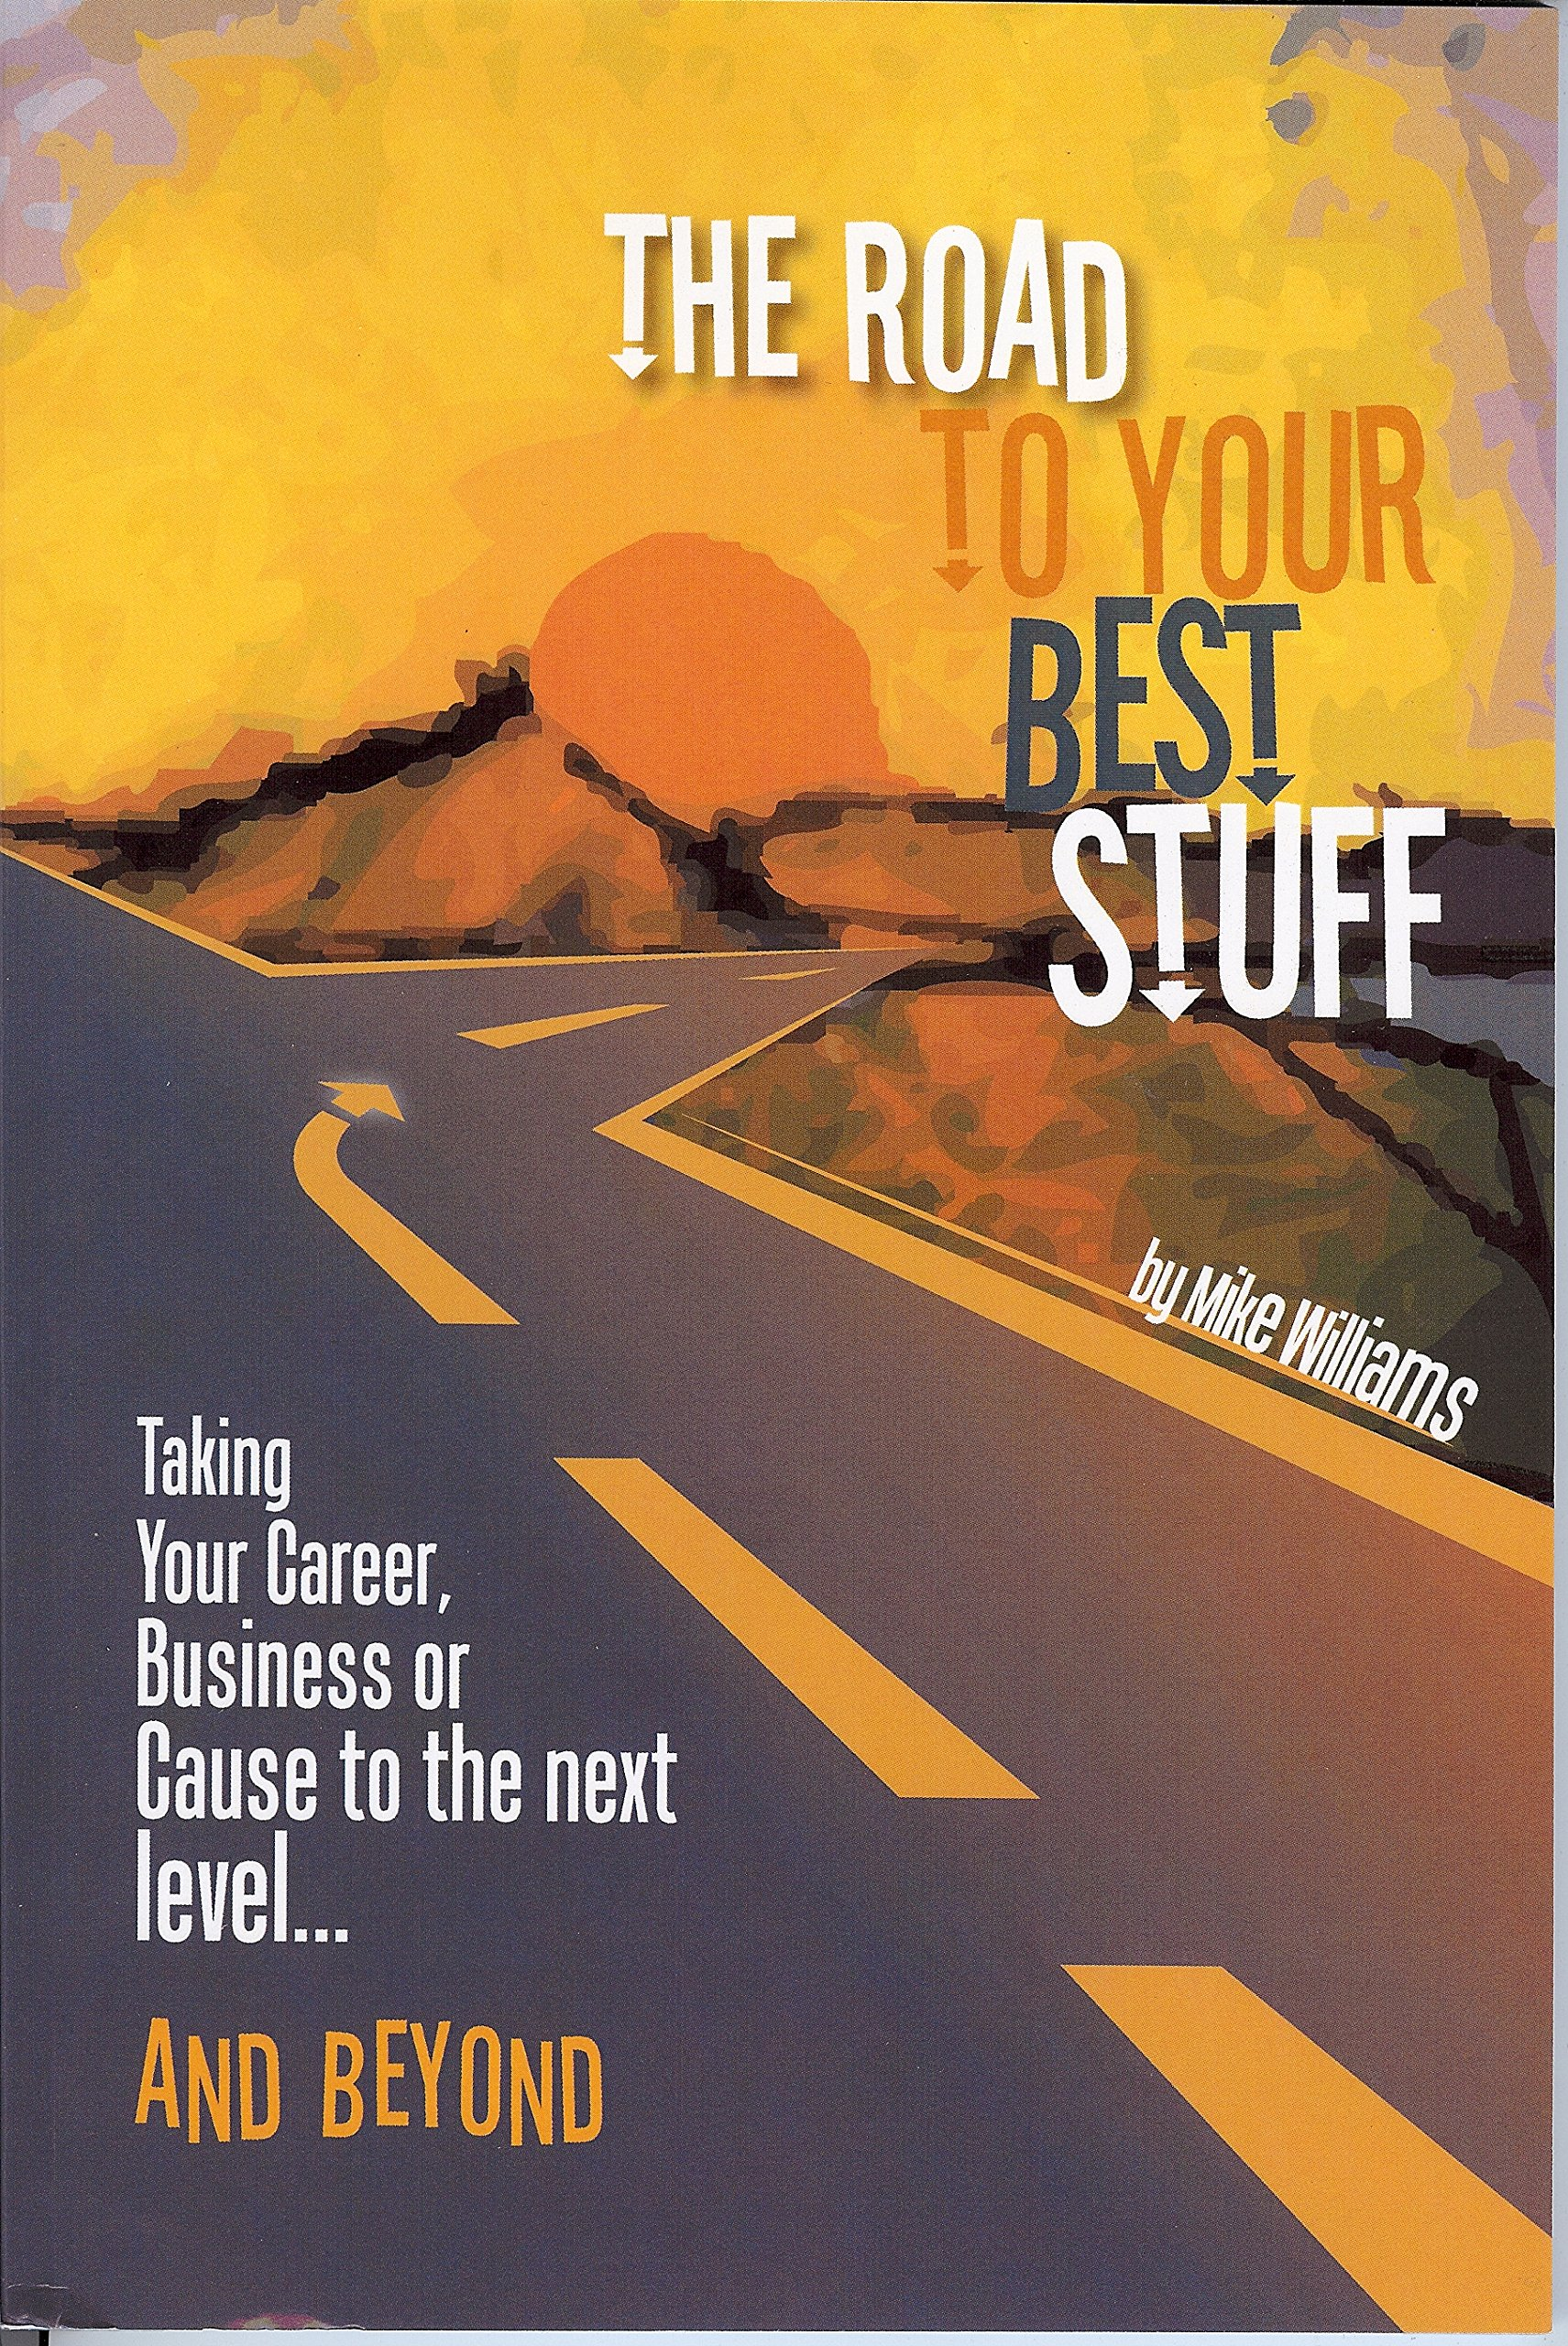 The Road to Your Best Stuff: Taking Your Career, Business or Cause